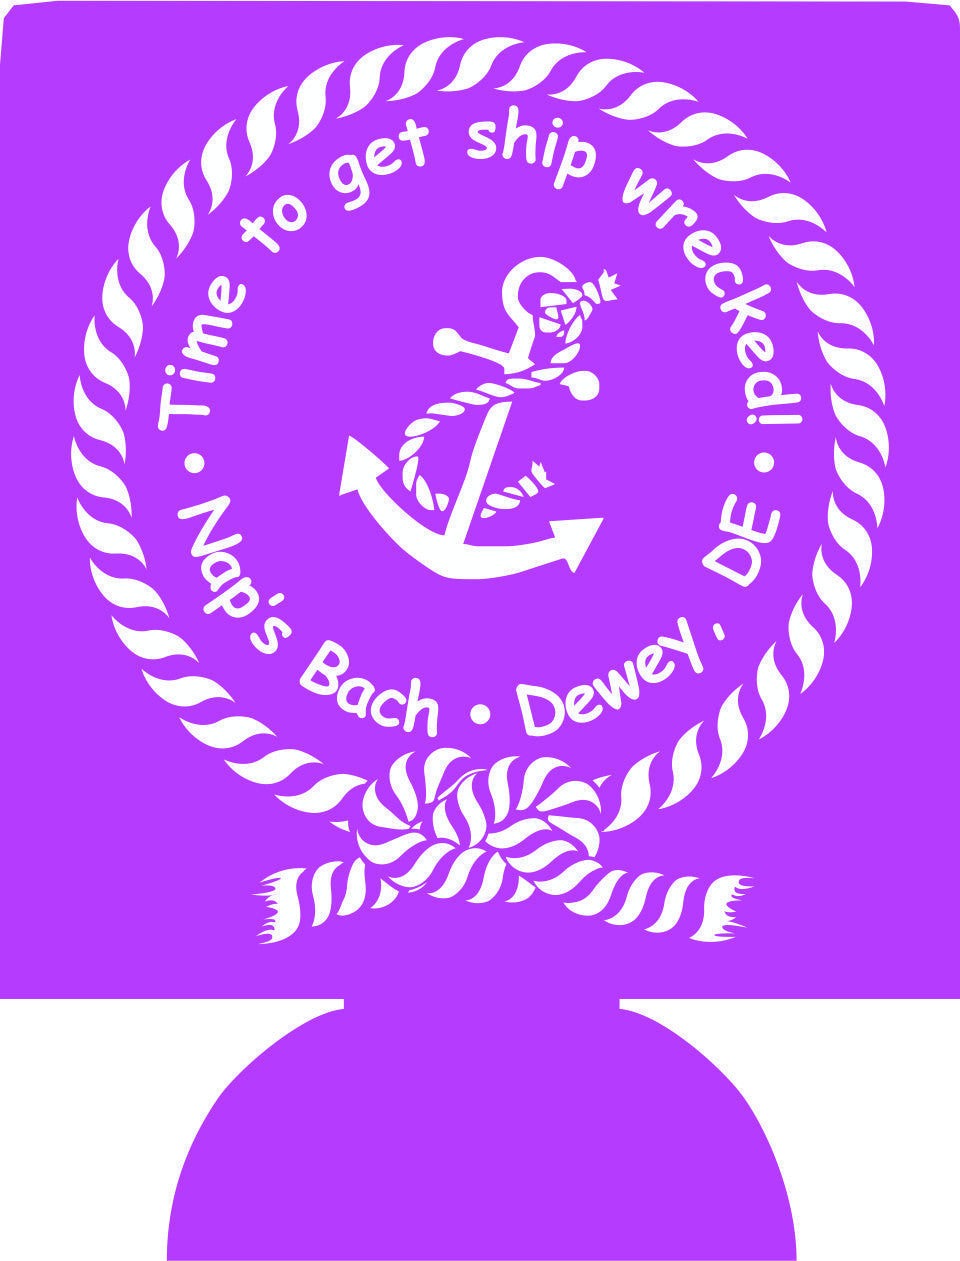 Time to ship wrecked Nautical bachelorette cozy personalized